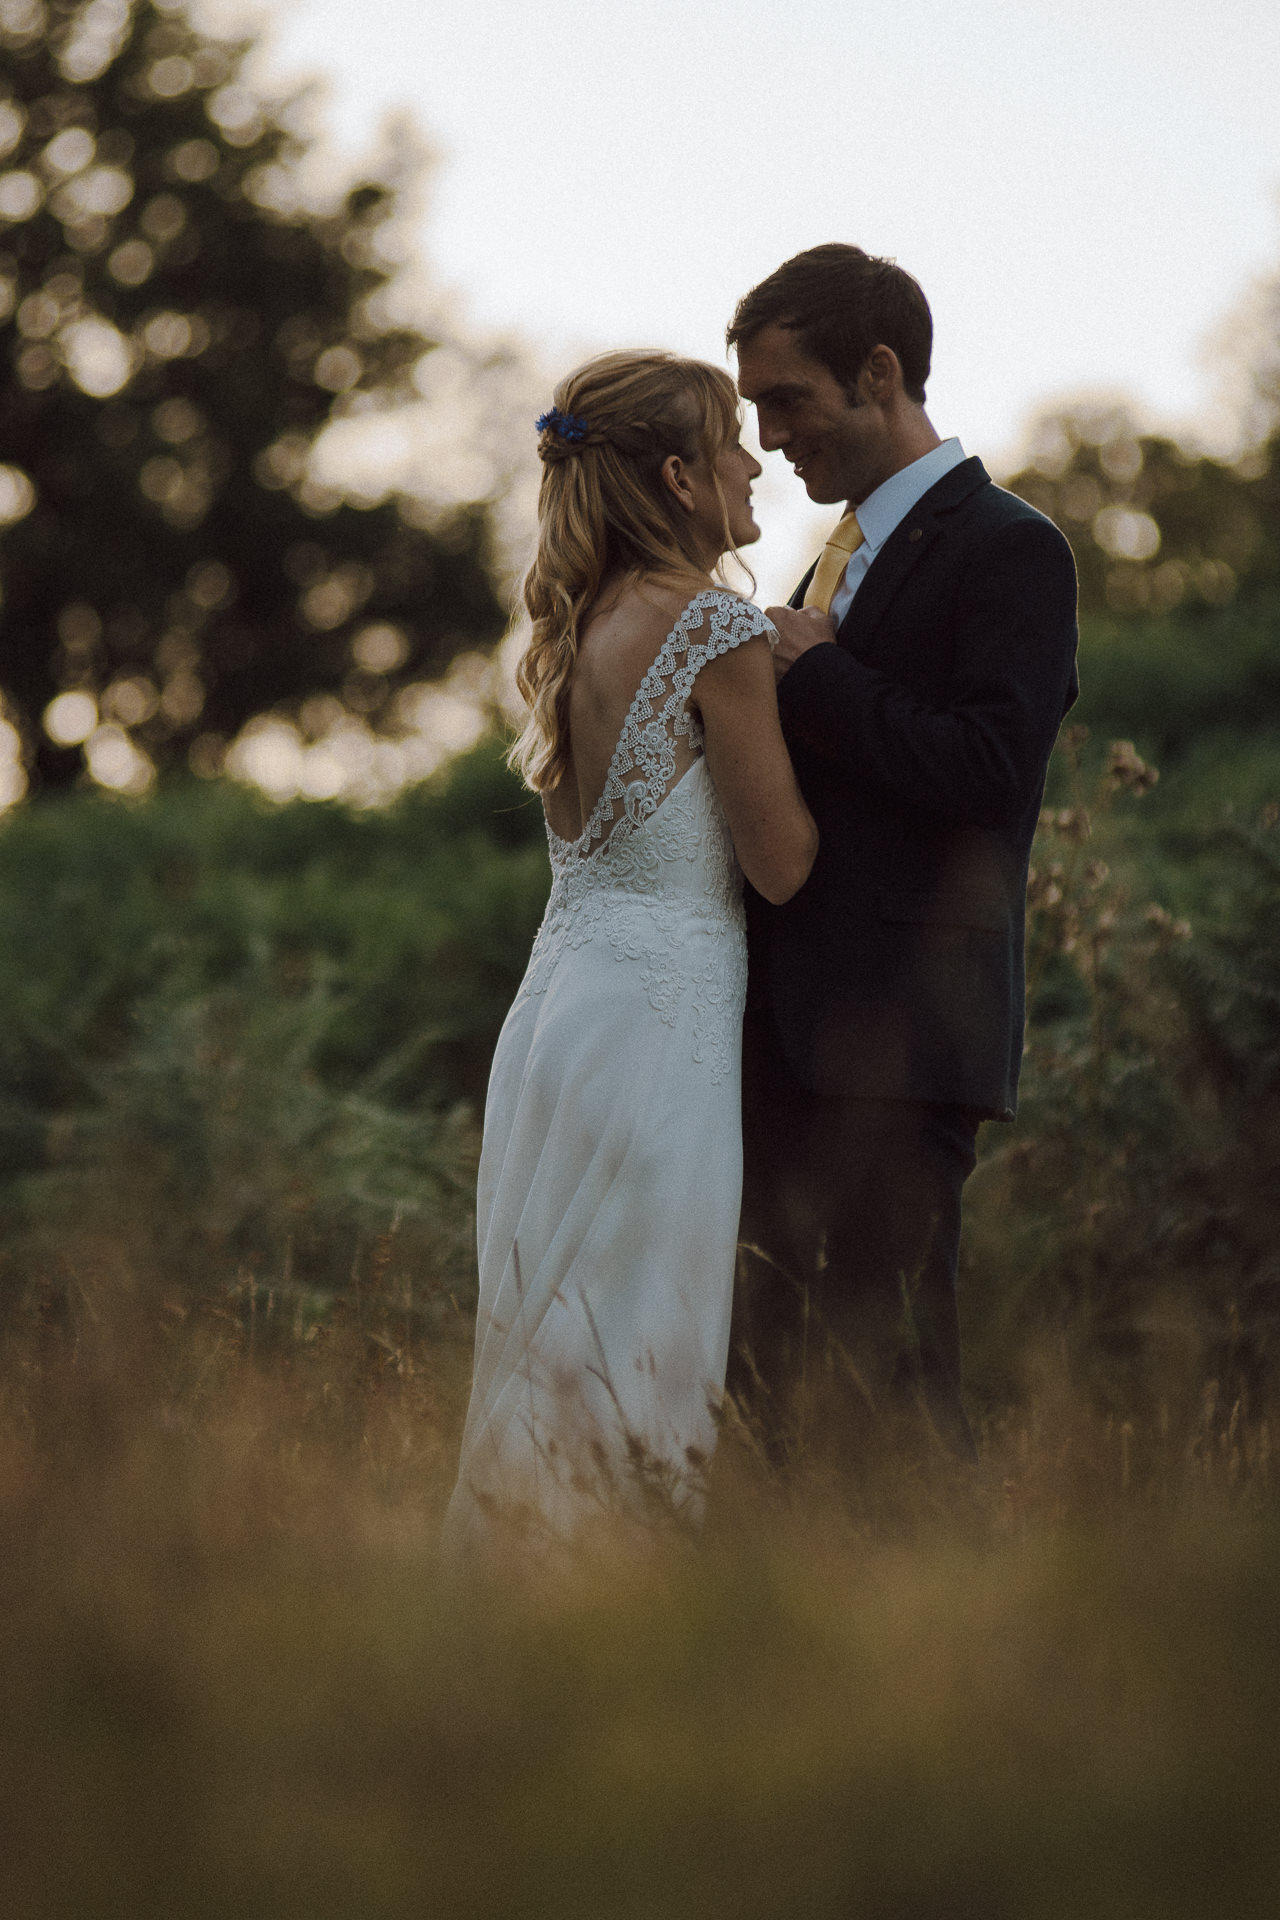 0012-DEVON-SOMERSET-WEDDING-PHOTOGRAPHER-0045-BEST-OF-2019-LOUISE-MAY-DEVON-SOMERSET-WEDDING-PHOTOGRAPHY-LMP_6709